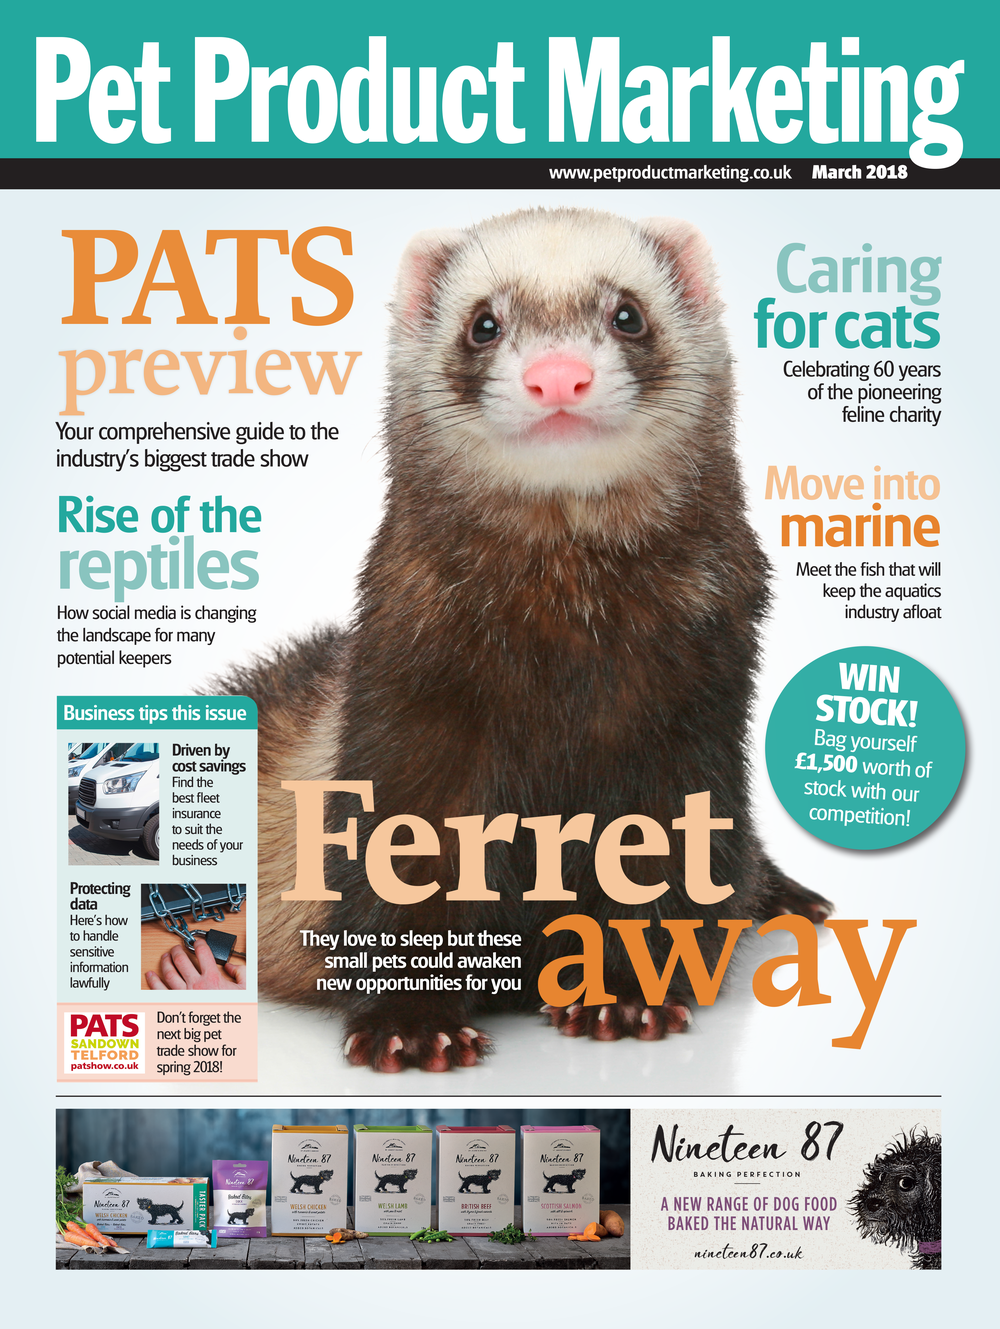 INSIDE THIS ISSUE:  FIND OUT MORE ABOUT FERRETS CELEBRATE 60 YEARS OF INTERNATIONAL CAT CARE PATS PREVIEW DIP YOUR TOE INTO MARINE AQUATICS